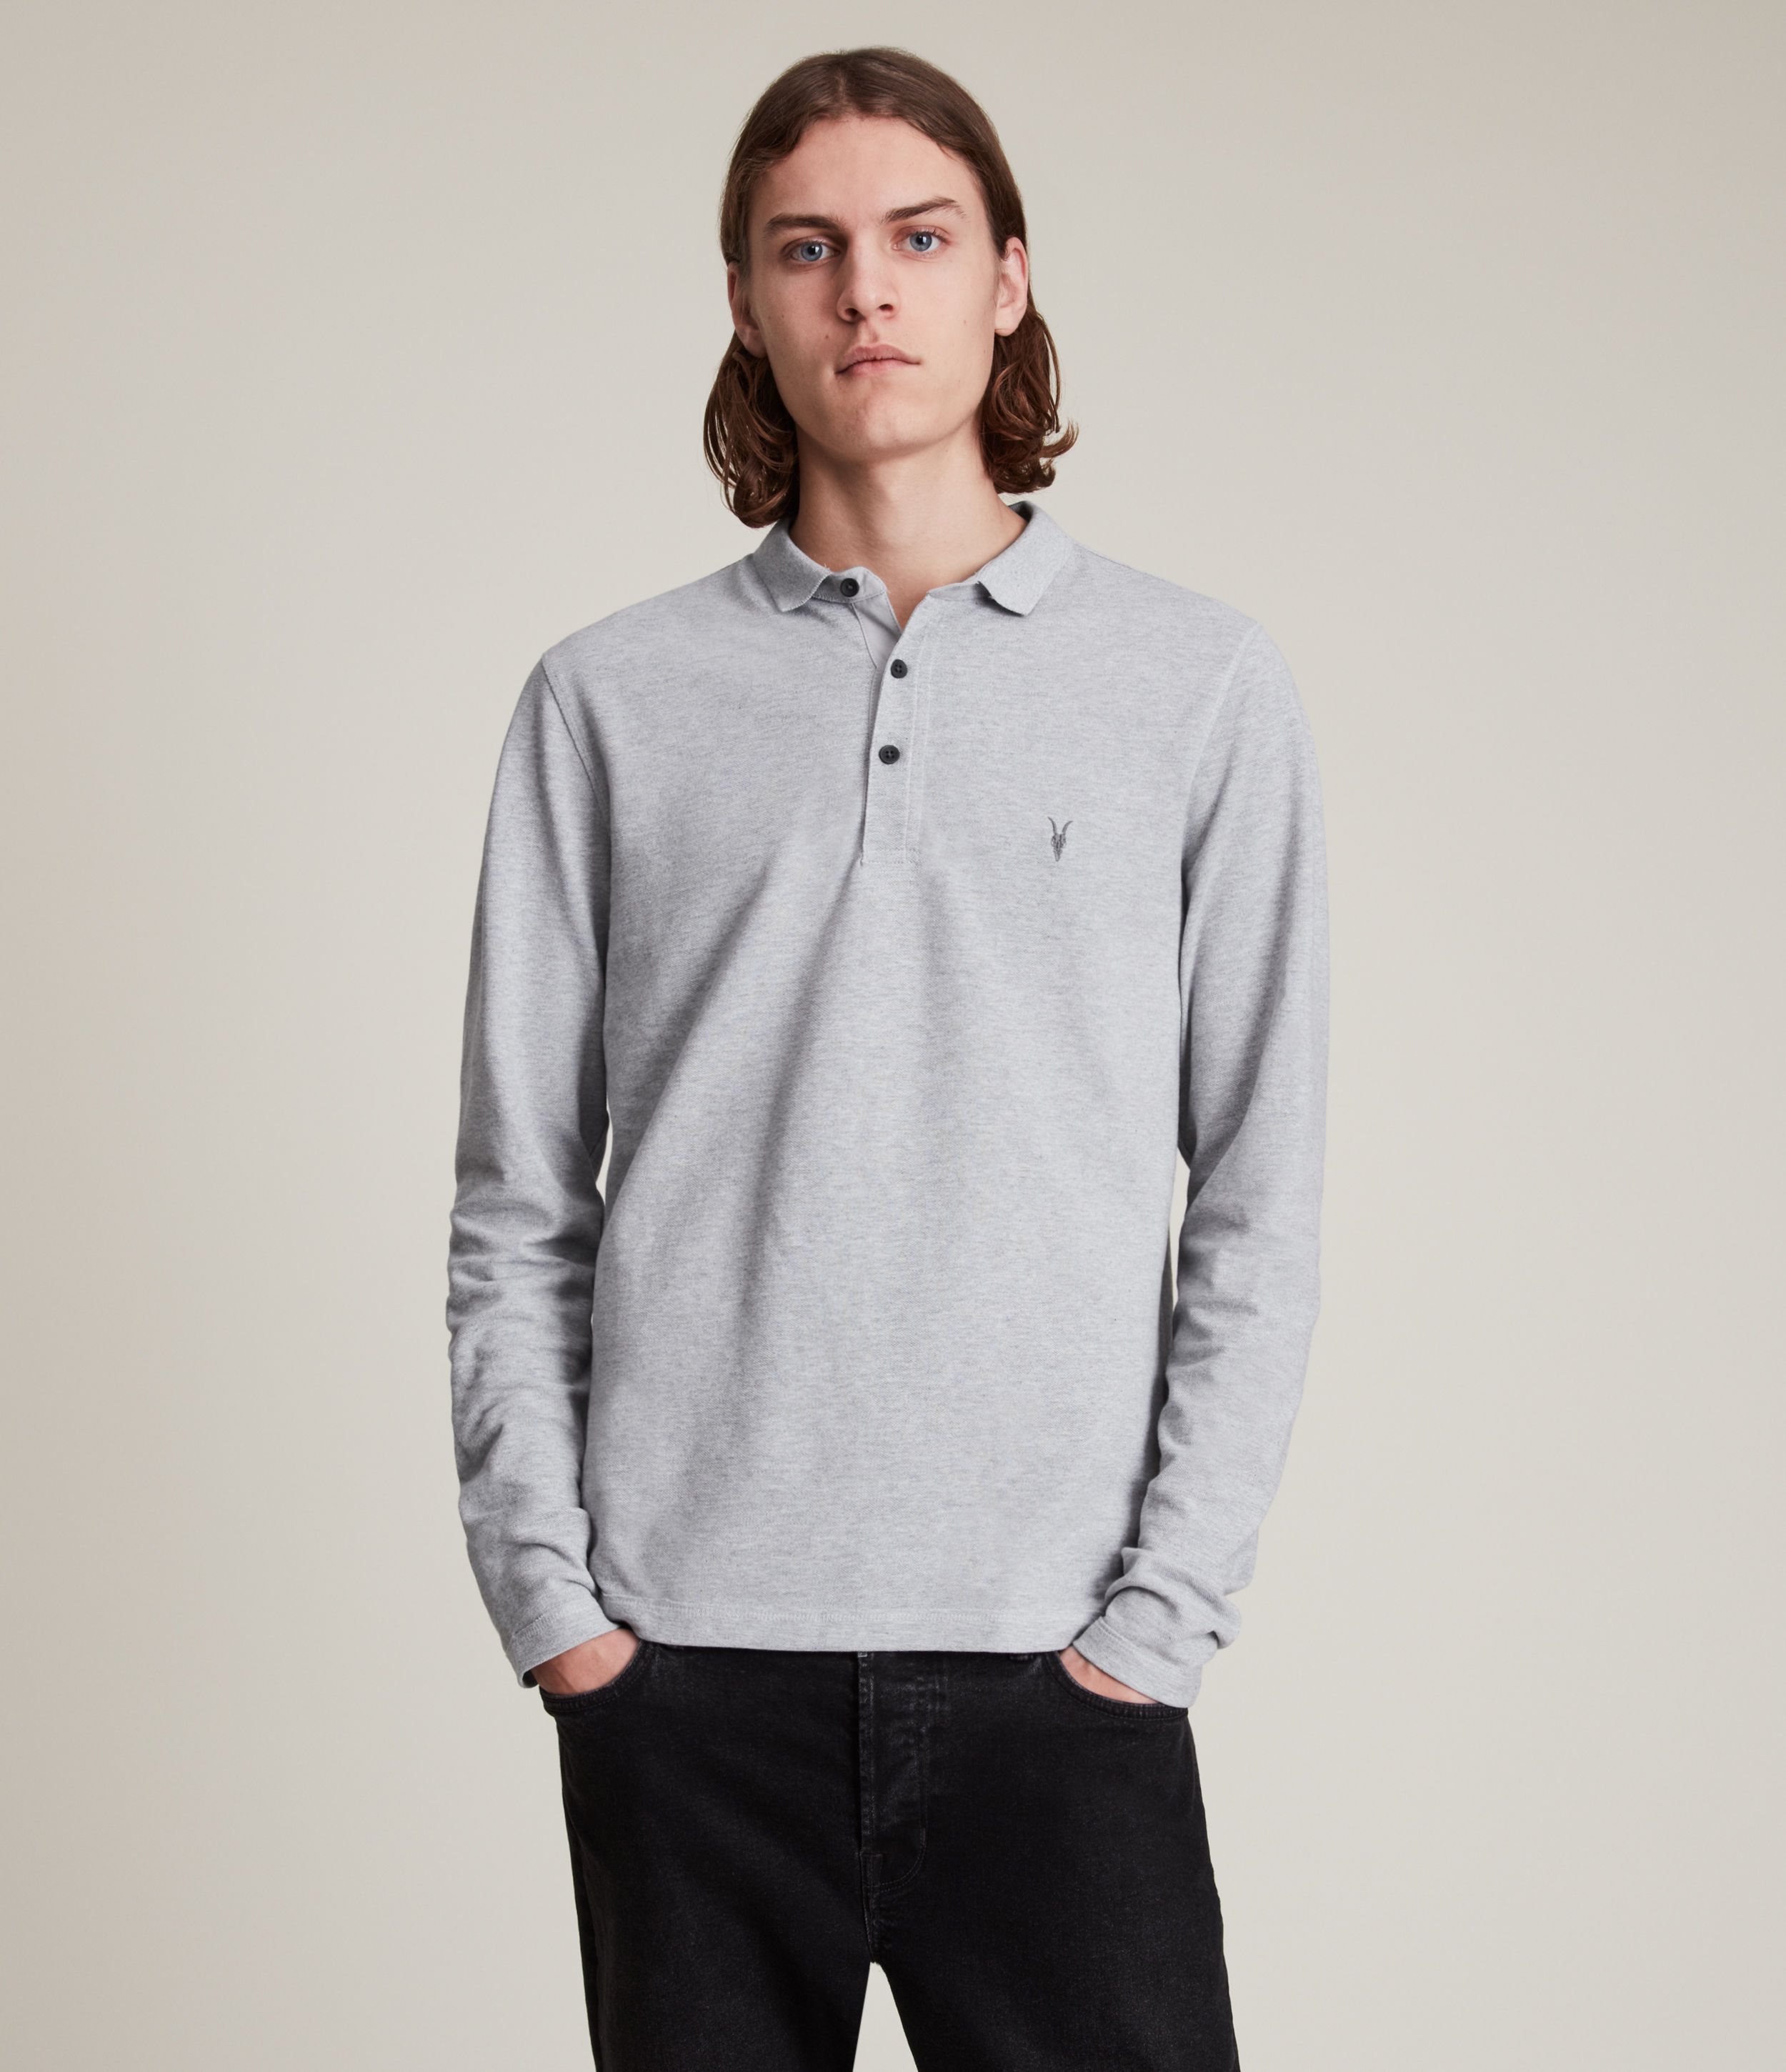 AllSaints Men's Cotton Slim Fit Reform Long Sleeve Polo Shirt, Grey, Size: L